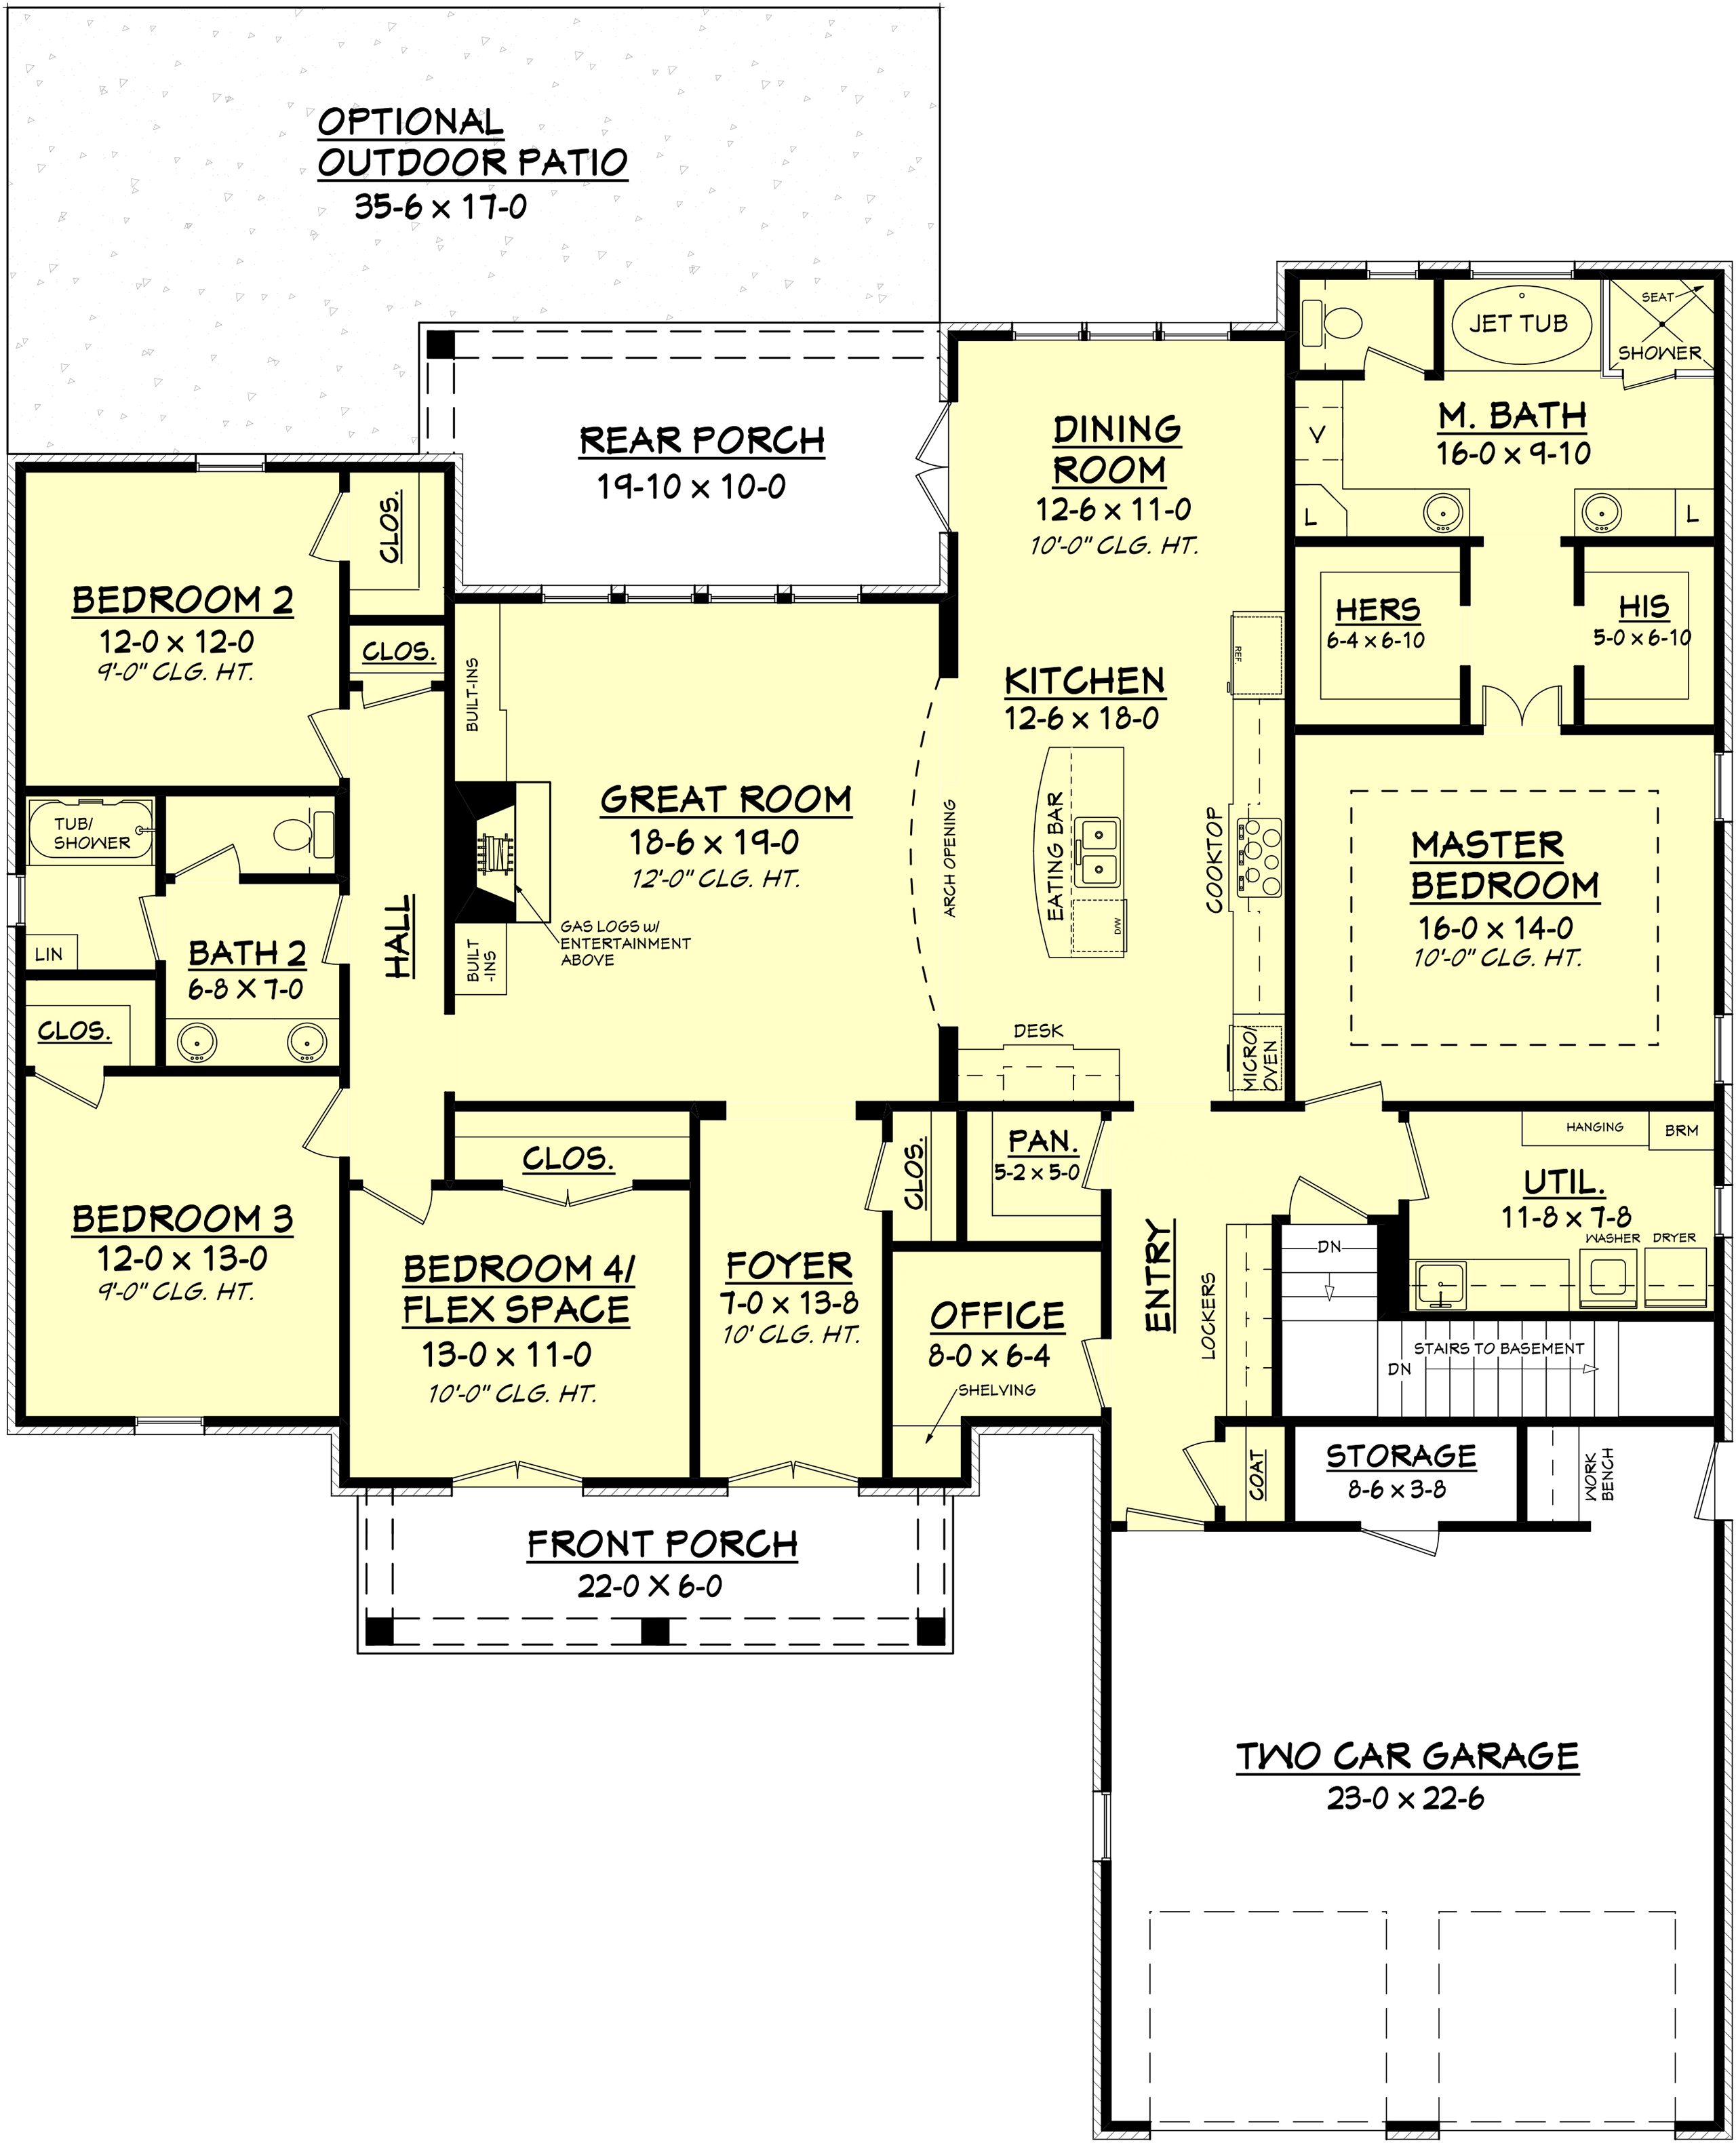 House plan 142 1100 4 bdrm 2 480 sq ft european home for 1100 sq ft home plans